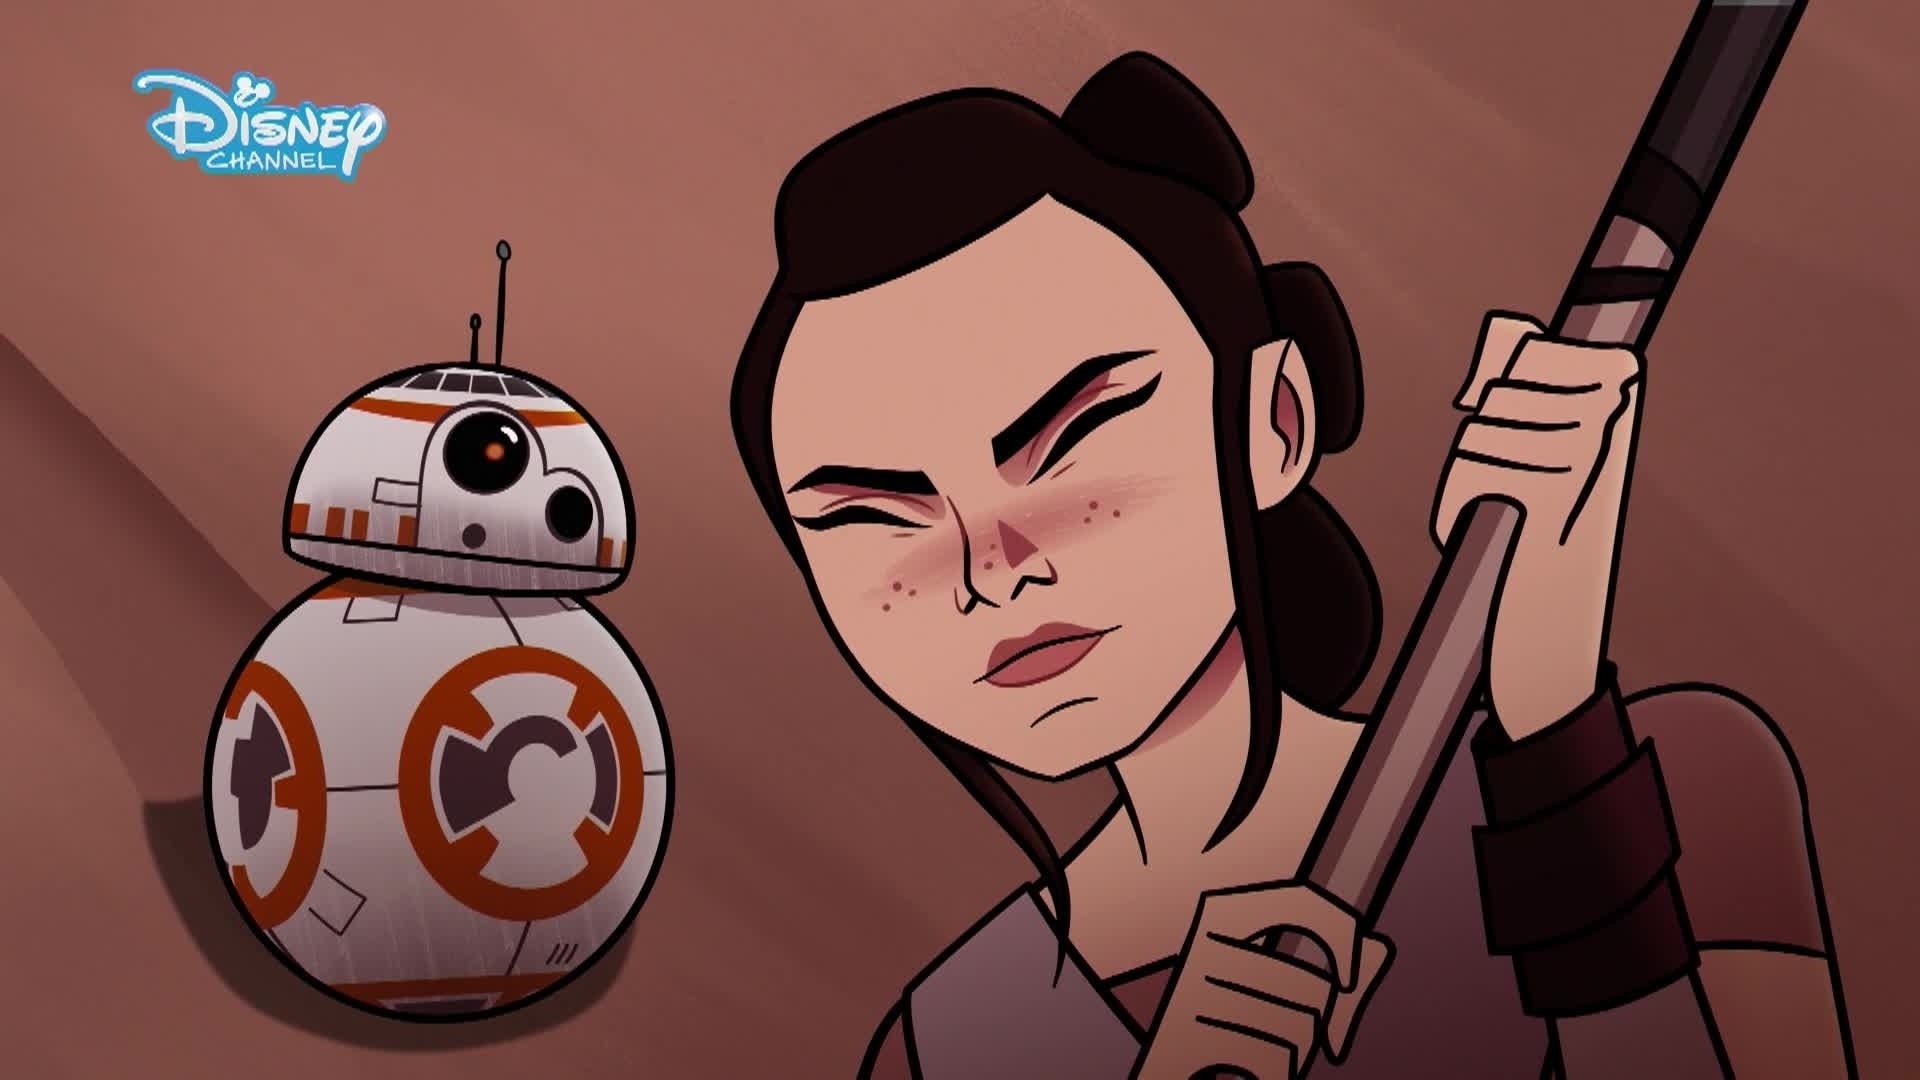 Star Wars Forces of Destiny: As Areias de Jakku